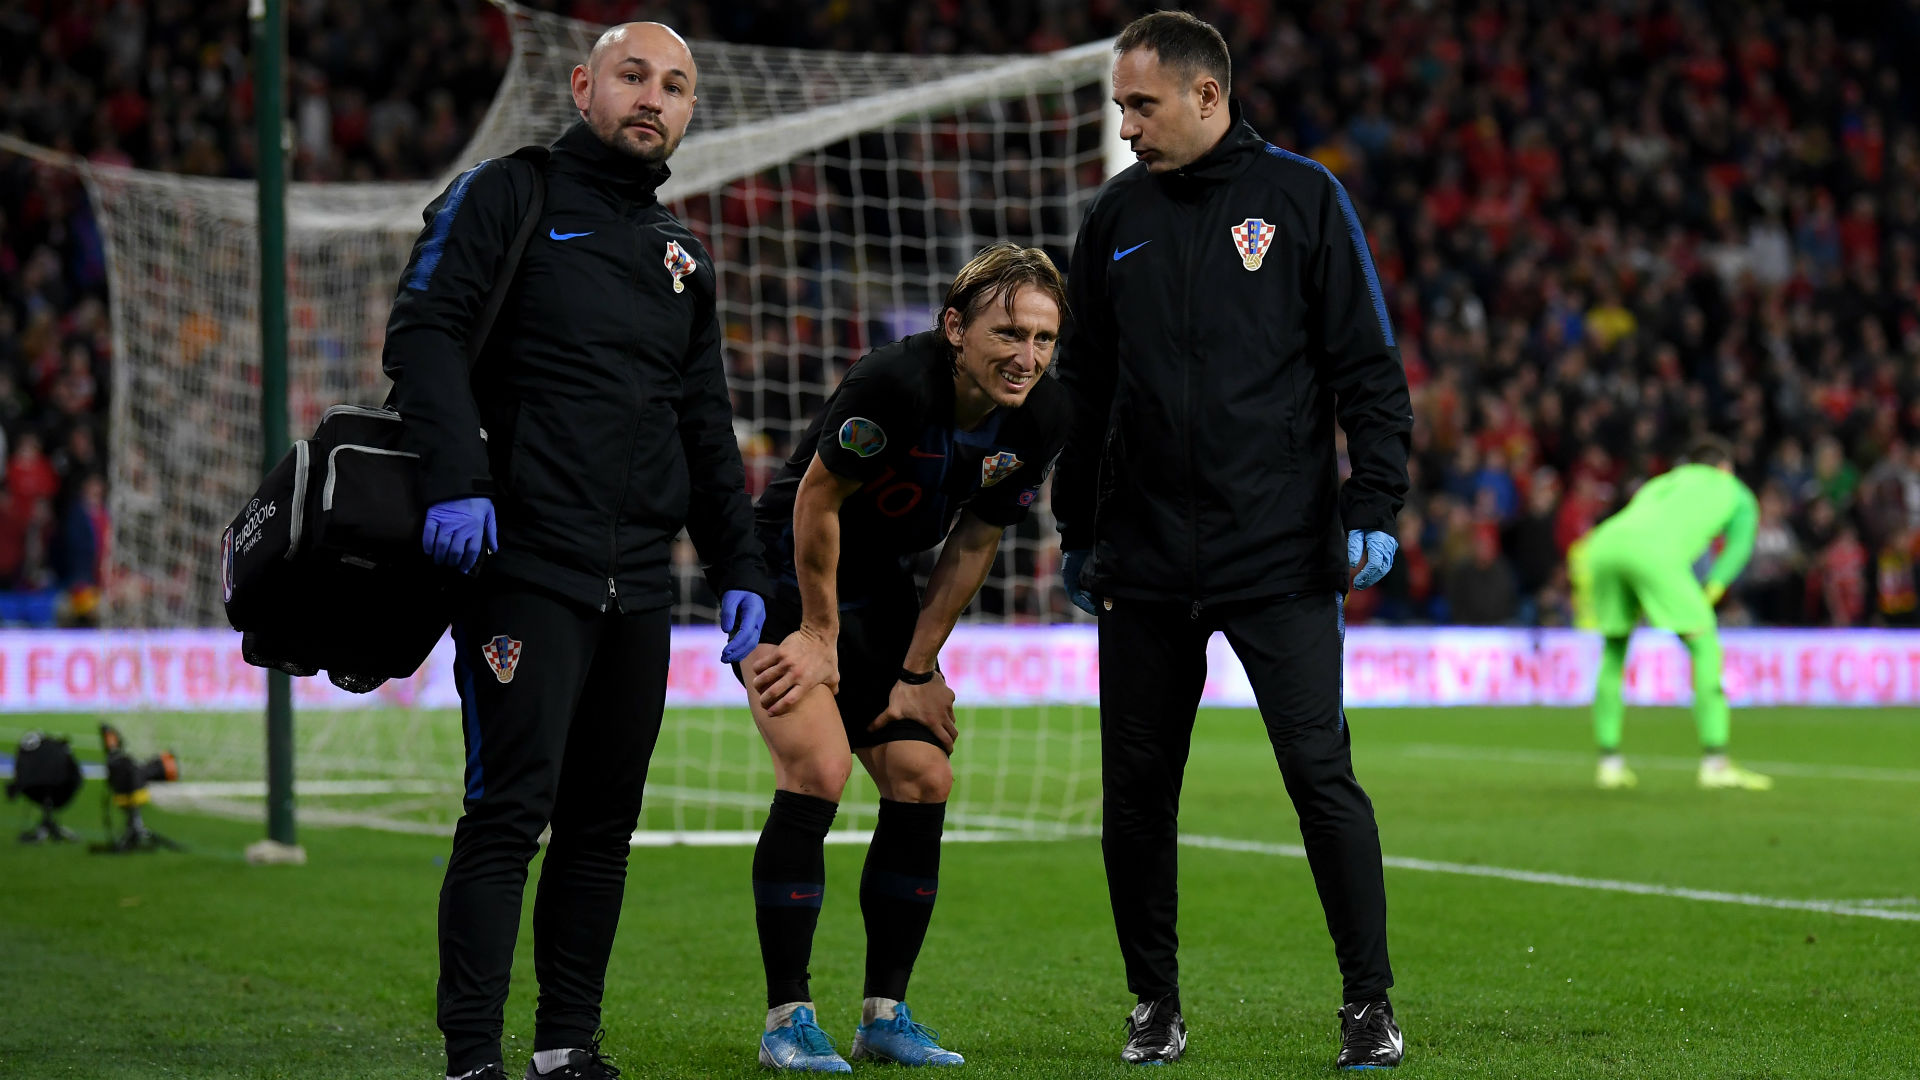 Real Madrid confirm muscle bruising for injured Modric